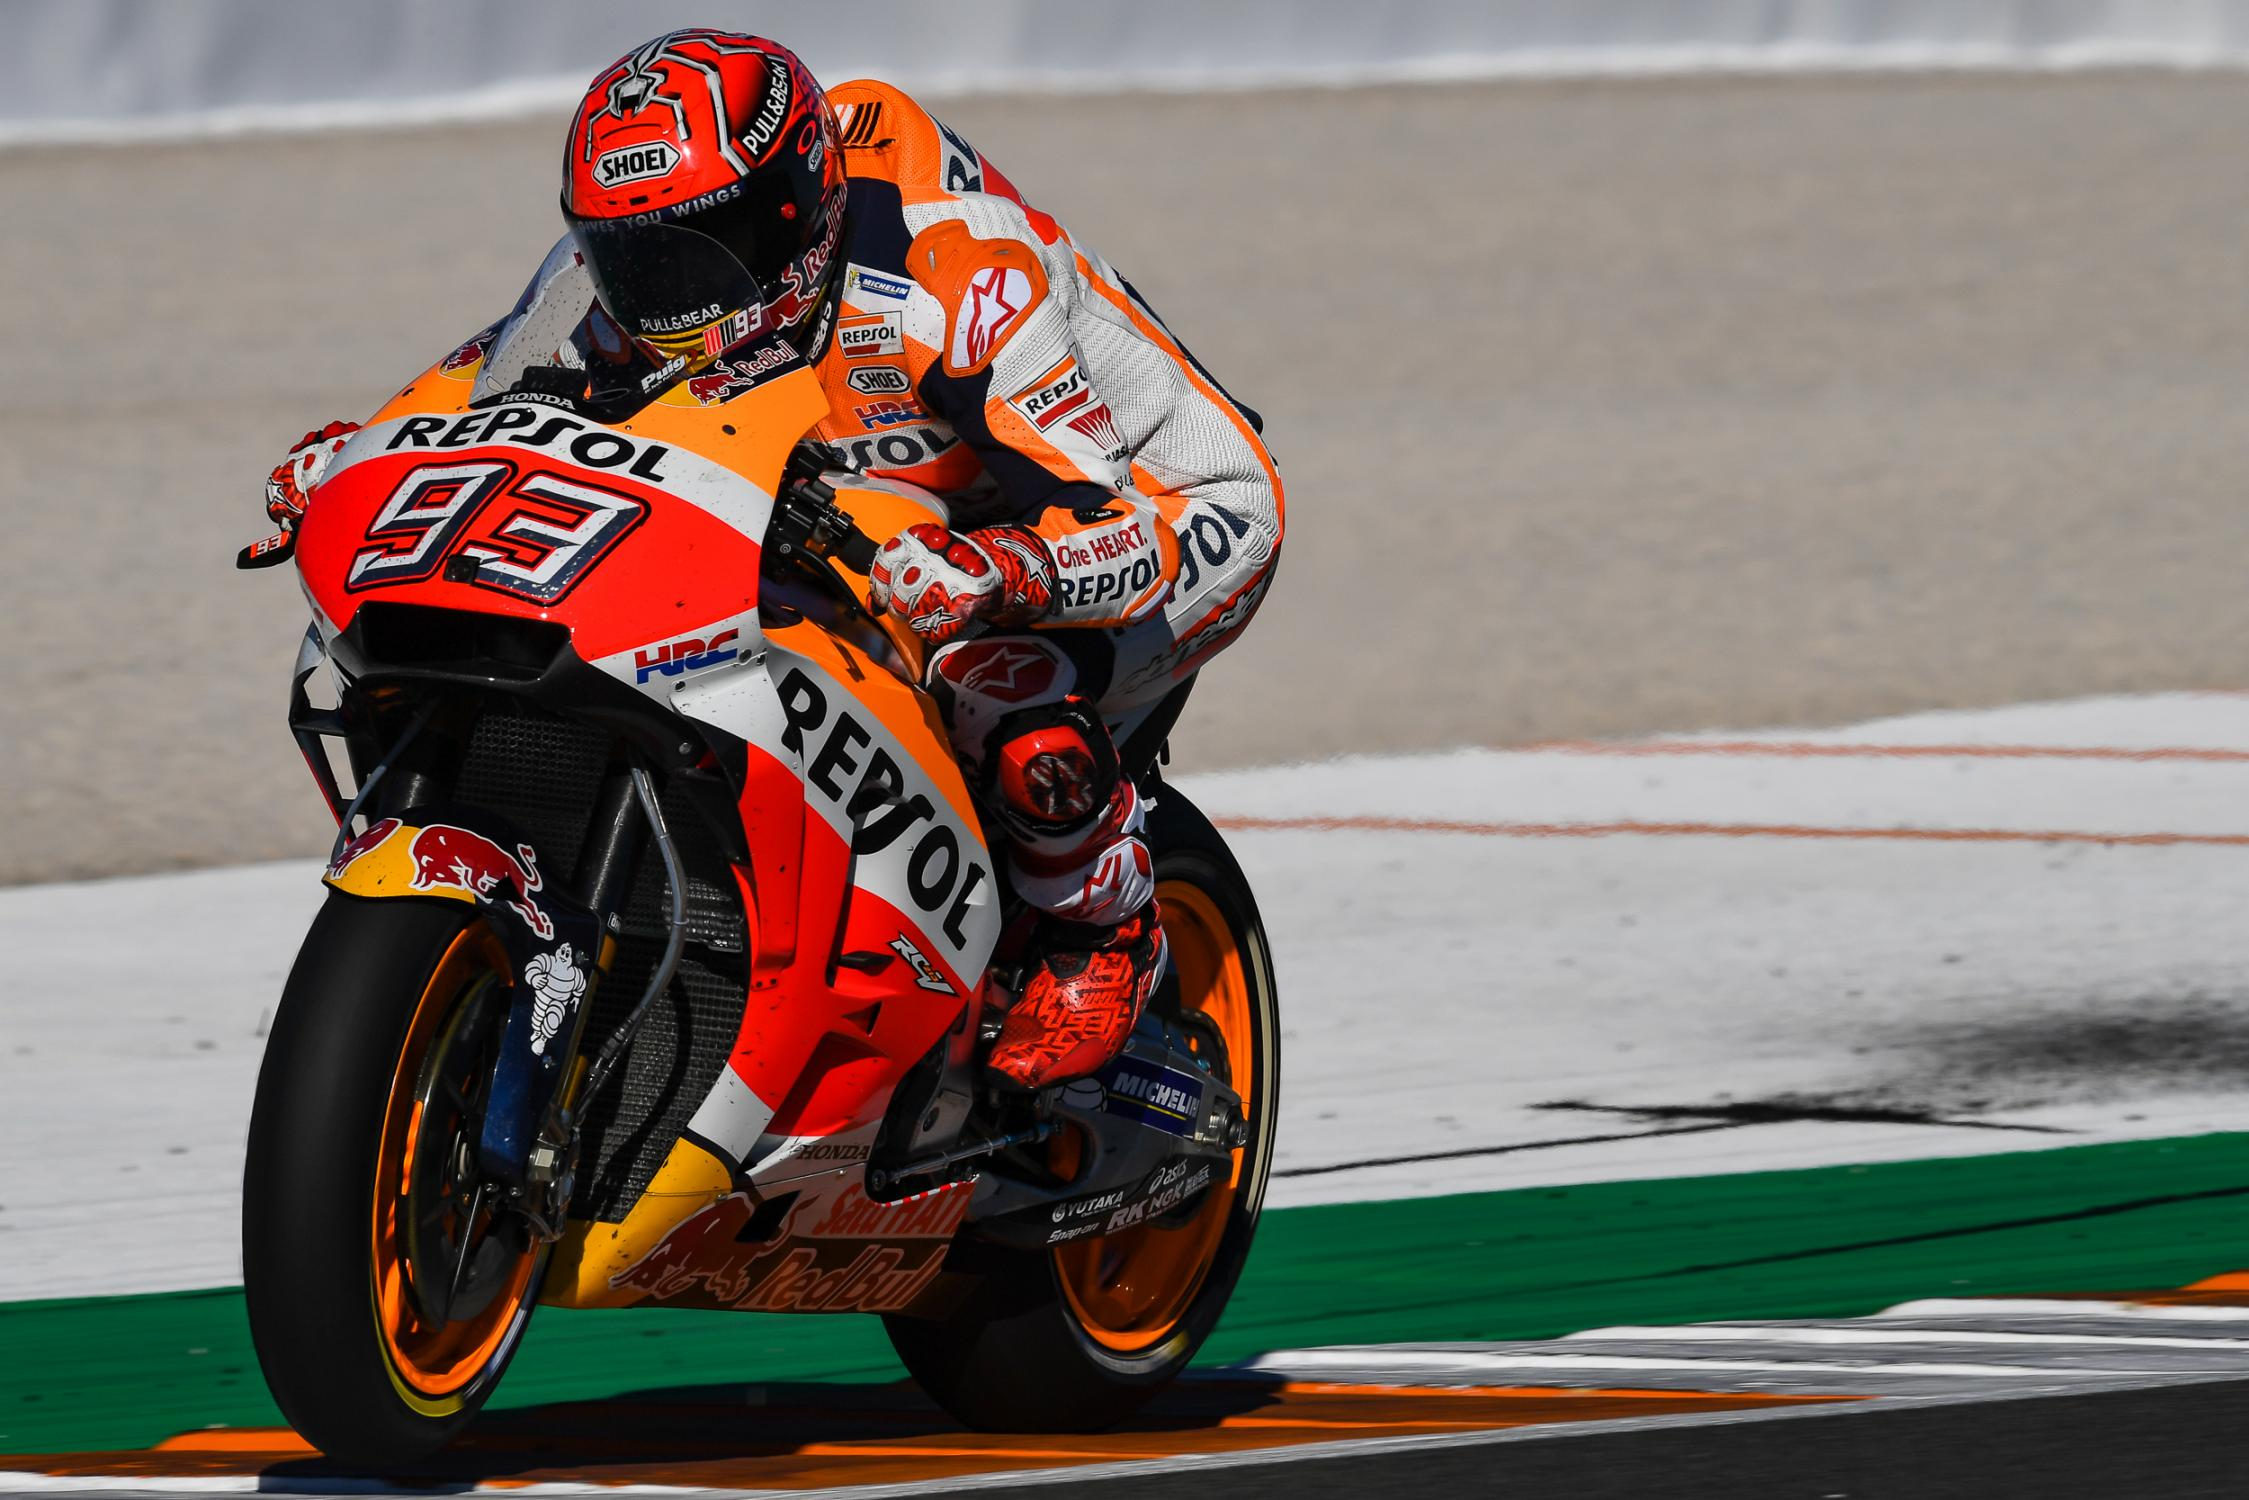 93-marc-marquez-espdsc_0341.gallery_full_top_fullscreen.jpg